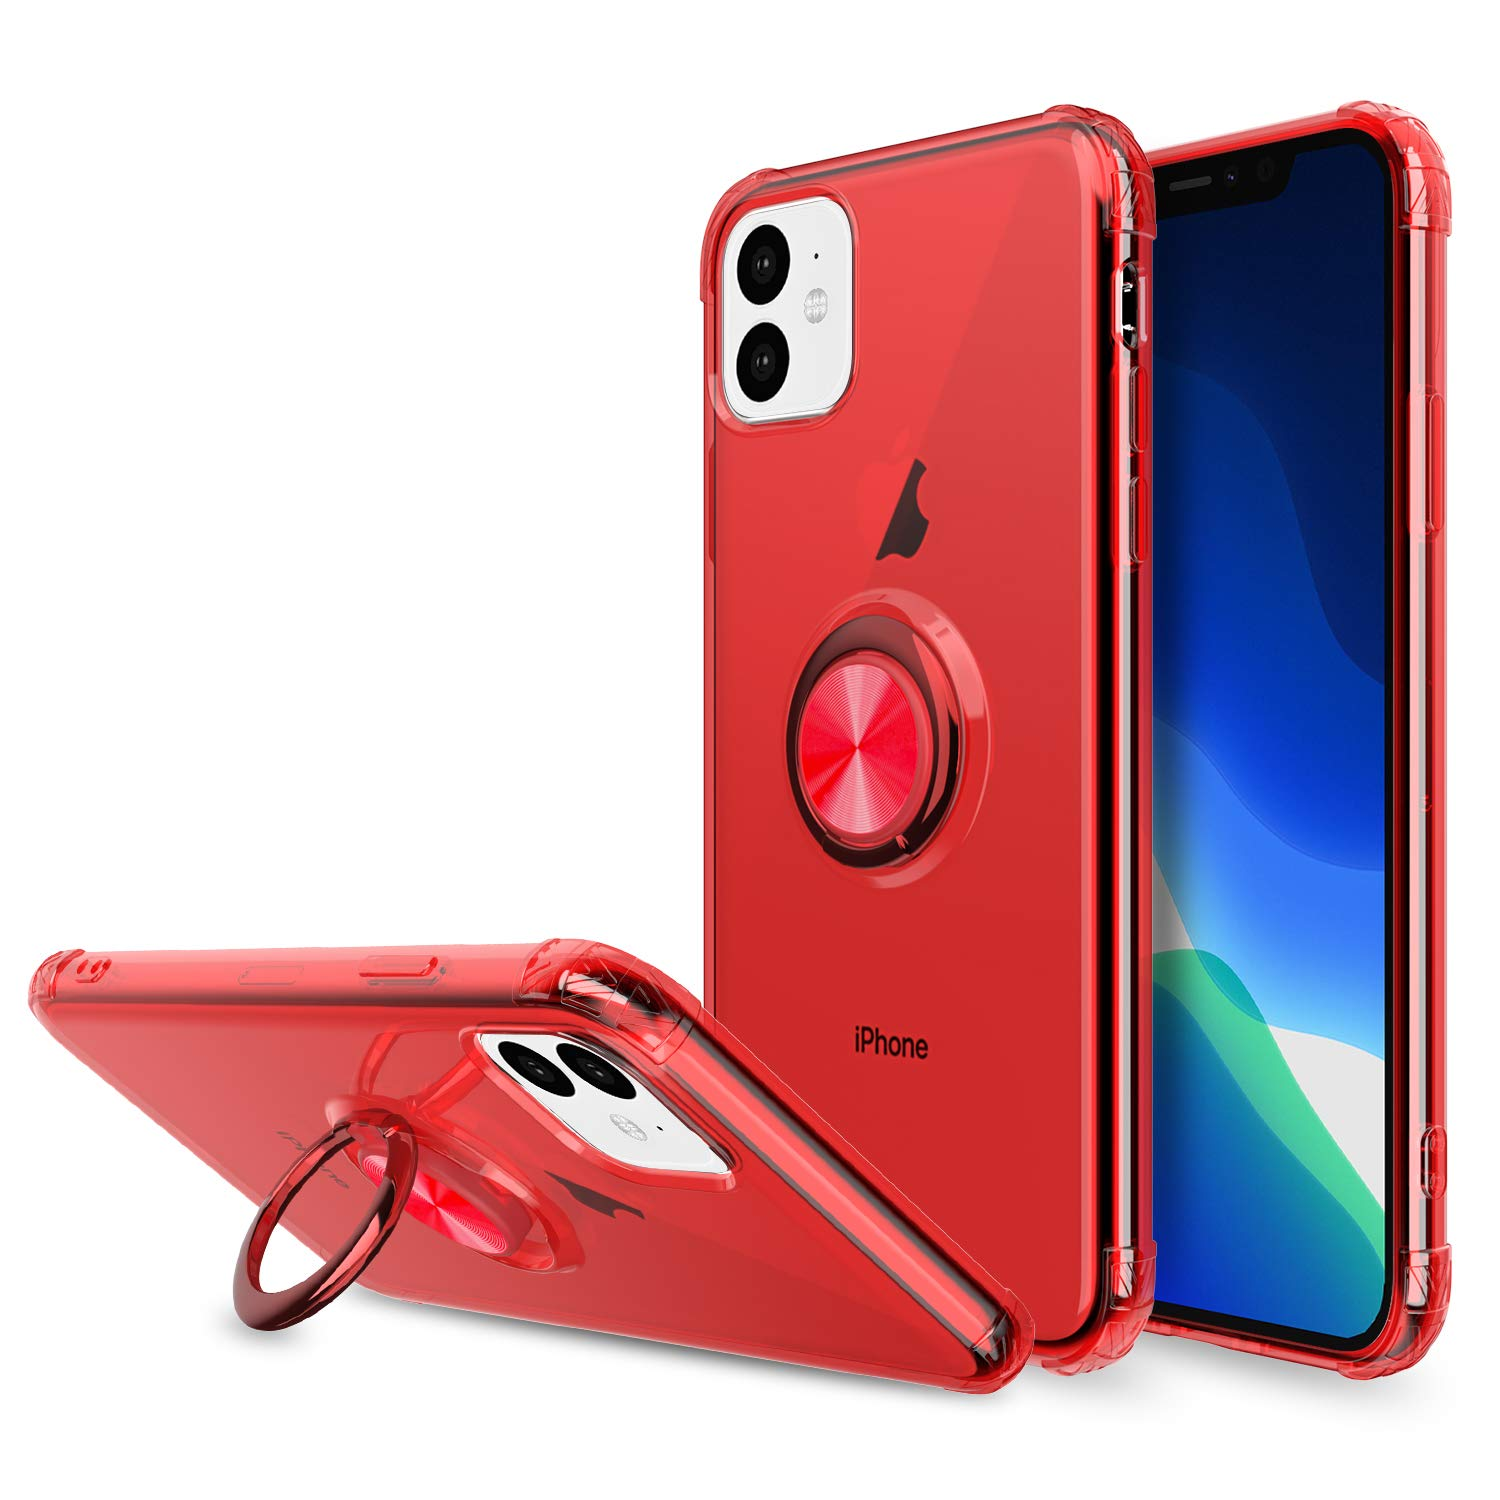 Elegant Choise Compatible iPhone 11 6.1 inch Case, Hybrid Clear Ultra Thin Ring Holder Kickstand Rugged Shockproof Anti-Scratch Armor Drop Protective Cover Compatible Magnetic Car Mount(Red)